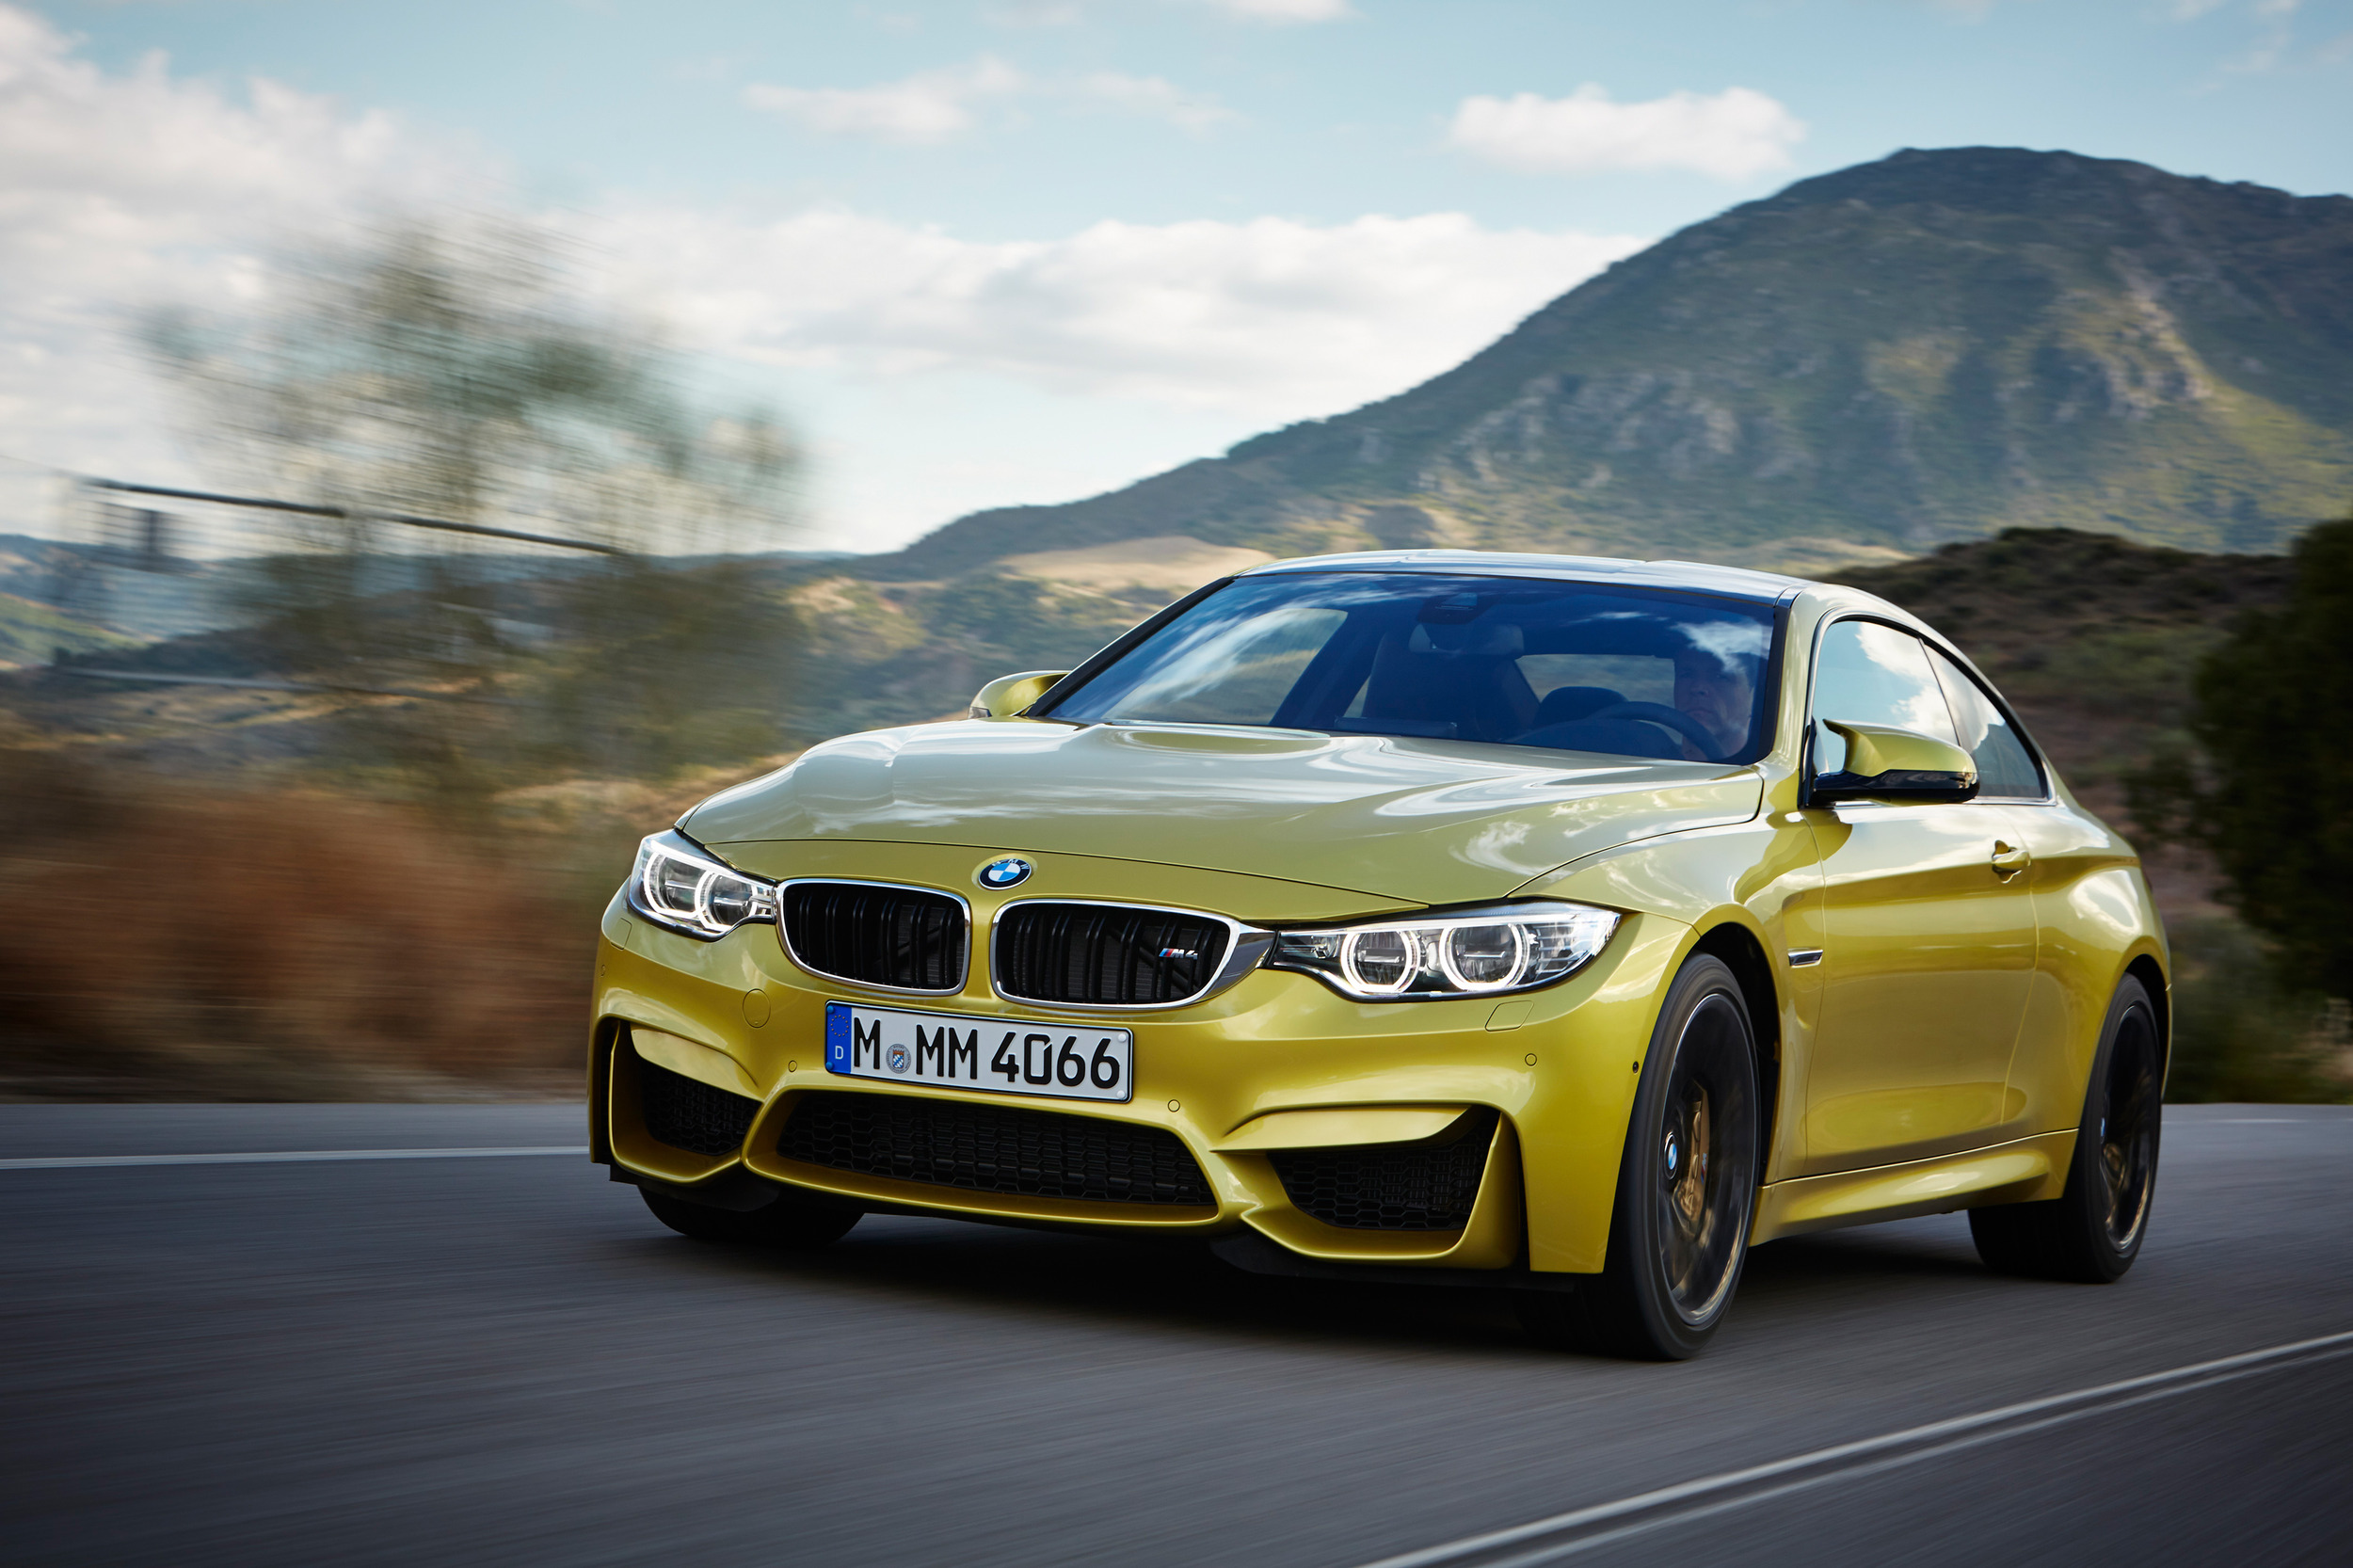 Comment ab mer sa bmw m4 neuve en sortant du garage for Bmw nasa garage juillet niort